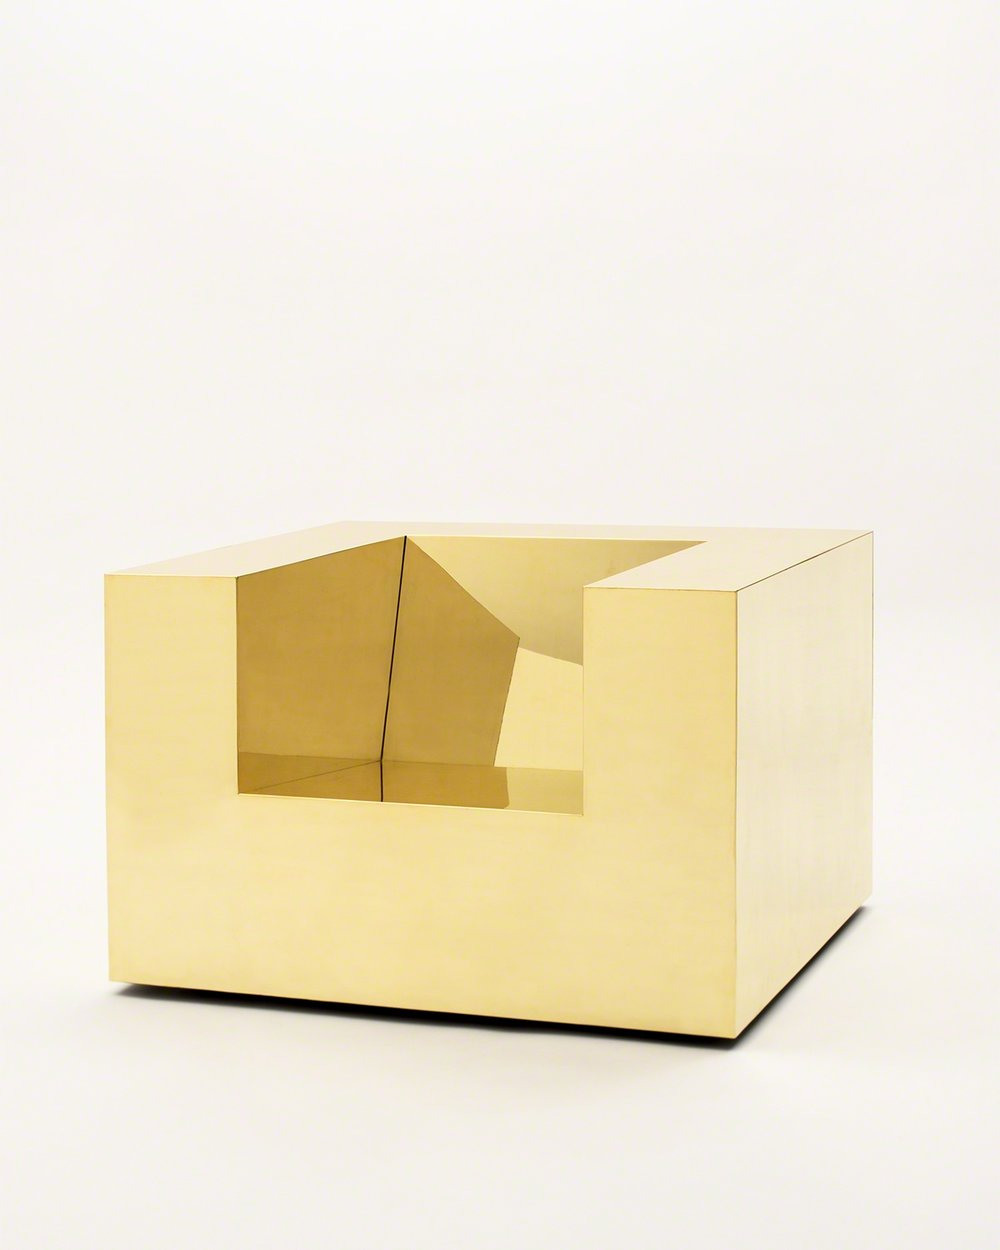 SUBTRACTED CUBE